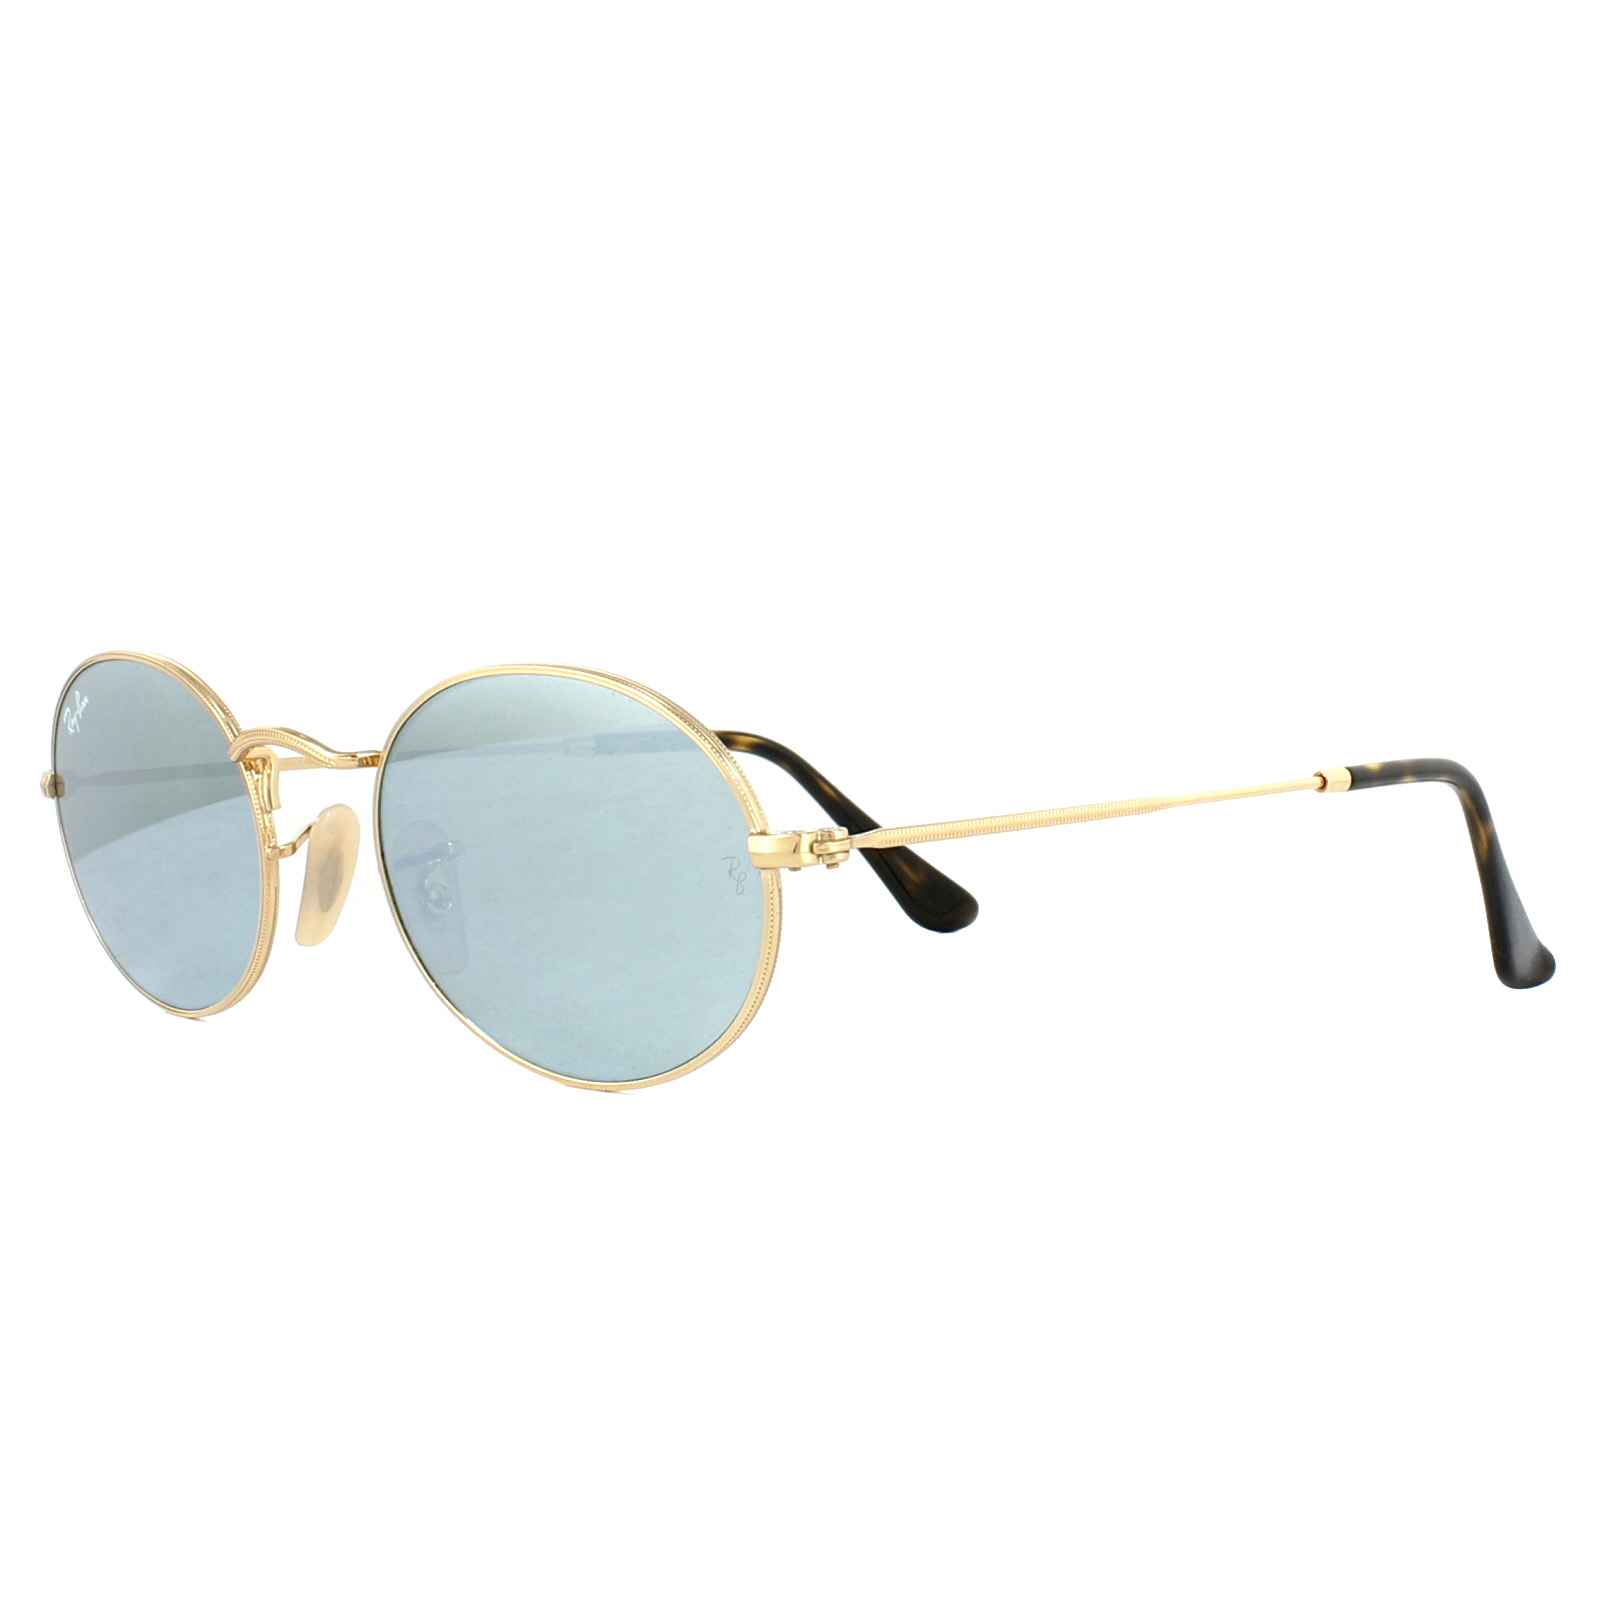 48539c0473a Details about Ray-Ban Sunglasses Oval 3547N 001 30 Gold Silver Mirror